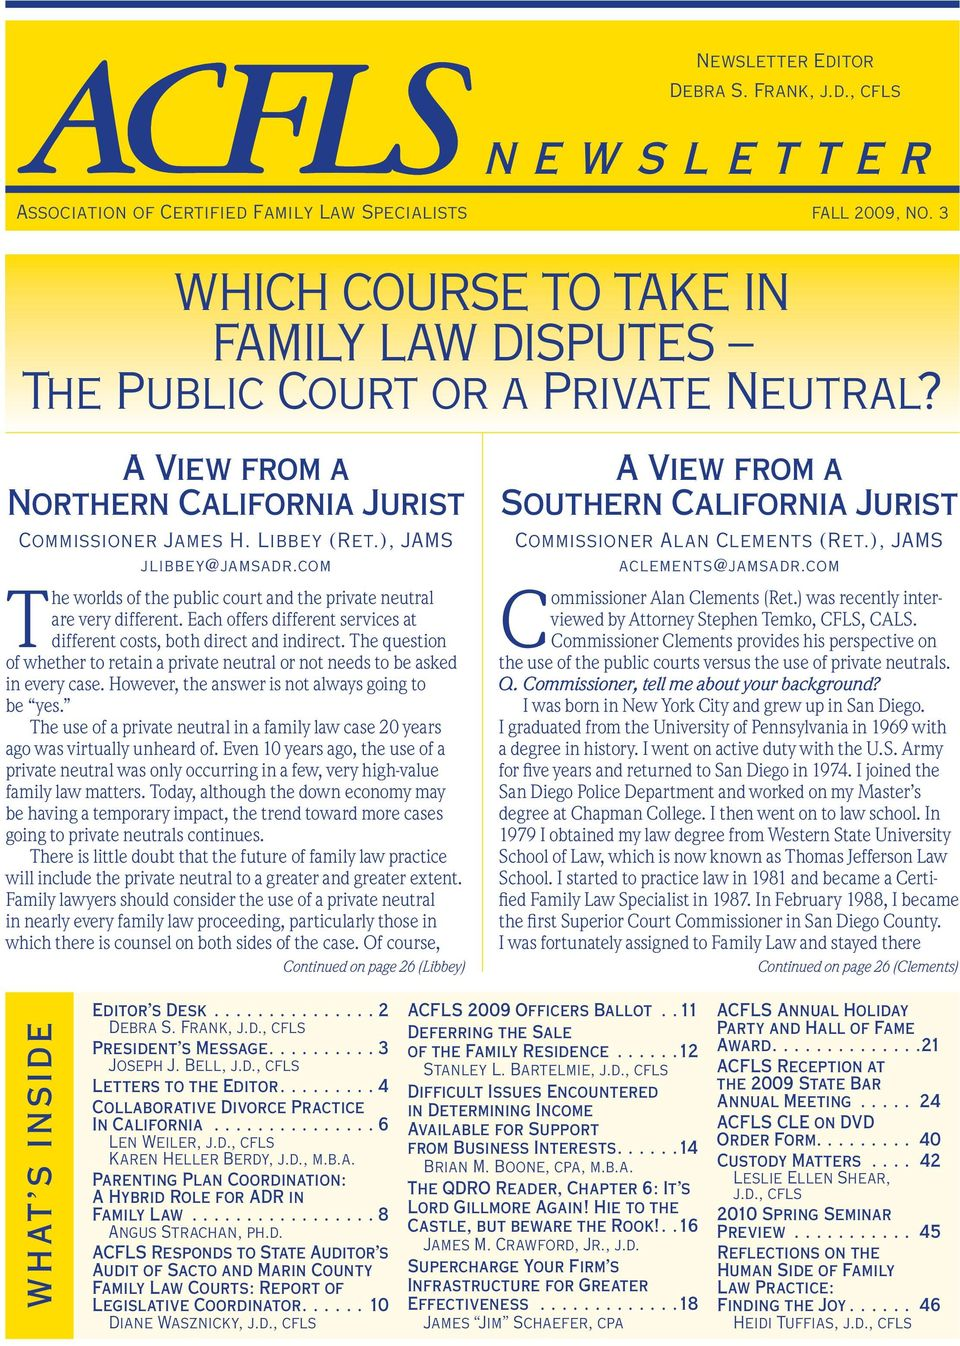 com The worlds of the public court and the private neutral are very different. Each offers different services at different costs, both direct and indirect.